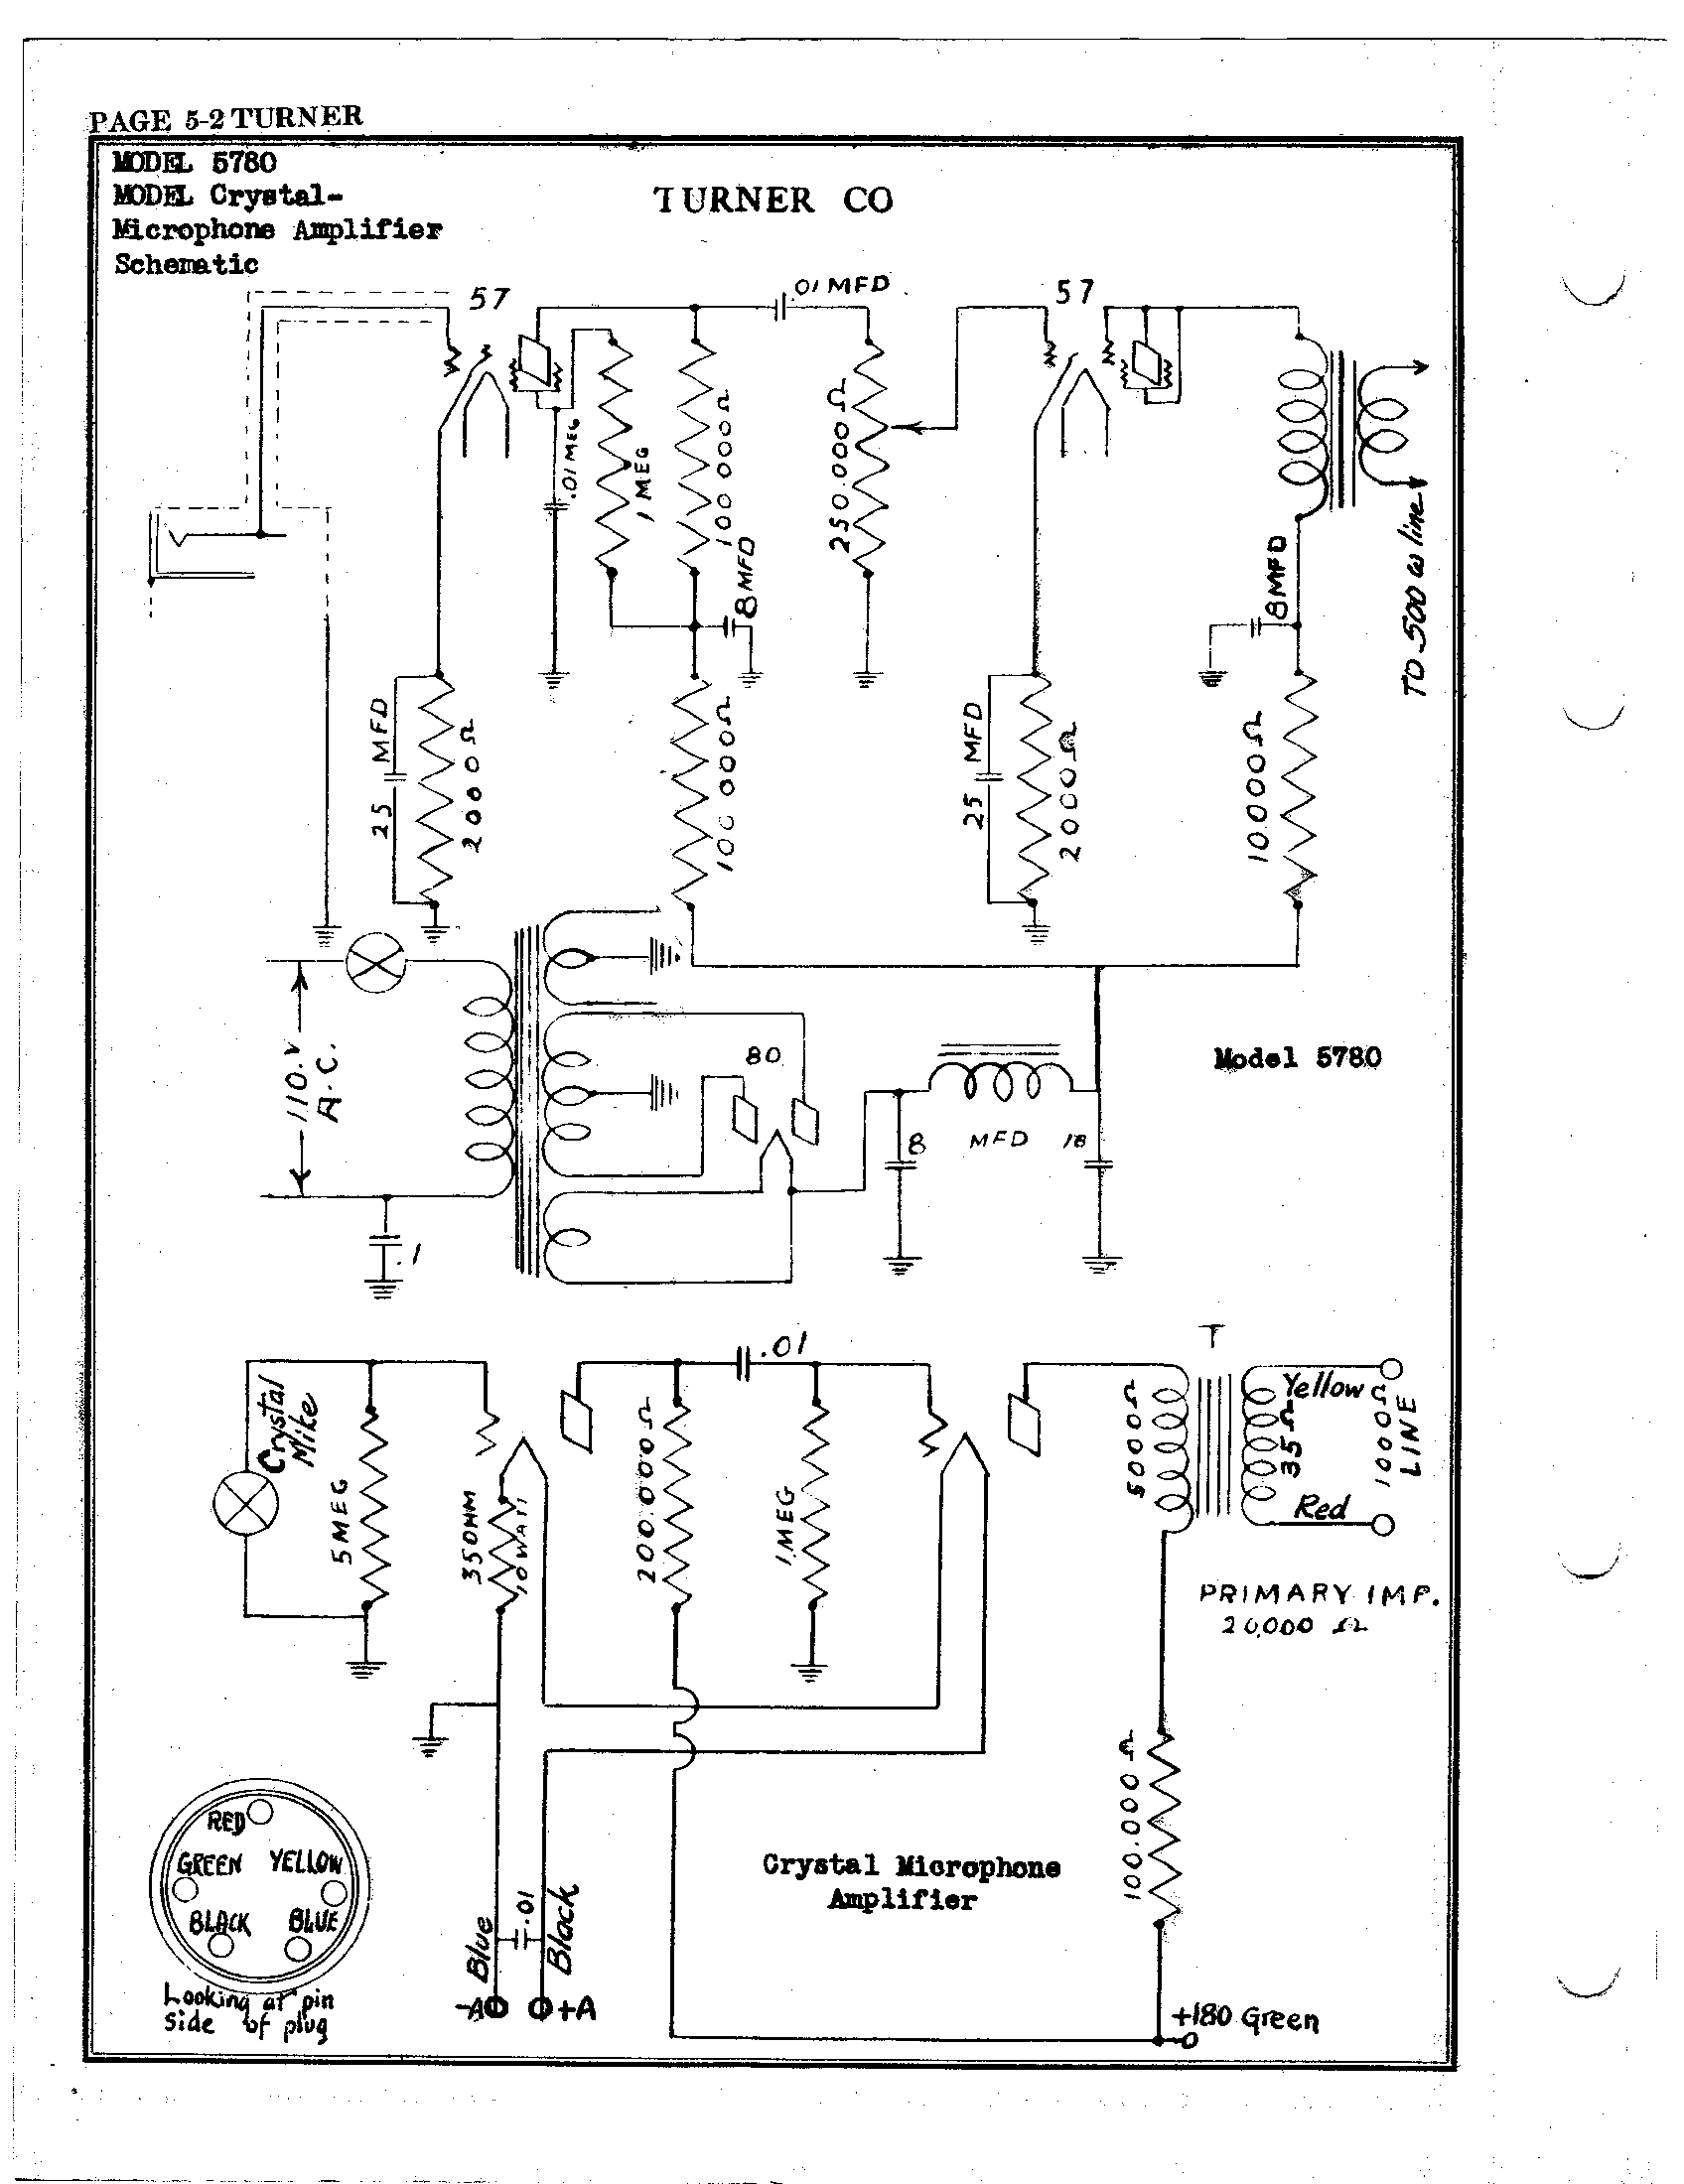 Wiring Diagram For Road King 56 Mic 2008 Road King Engine